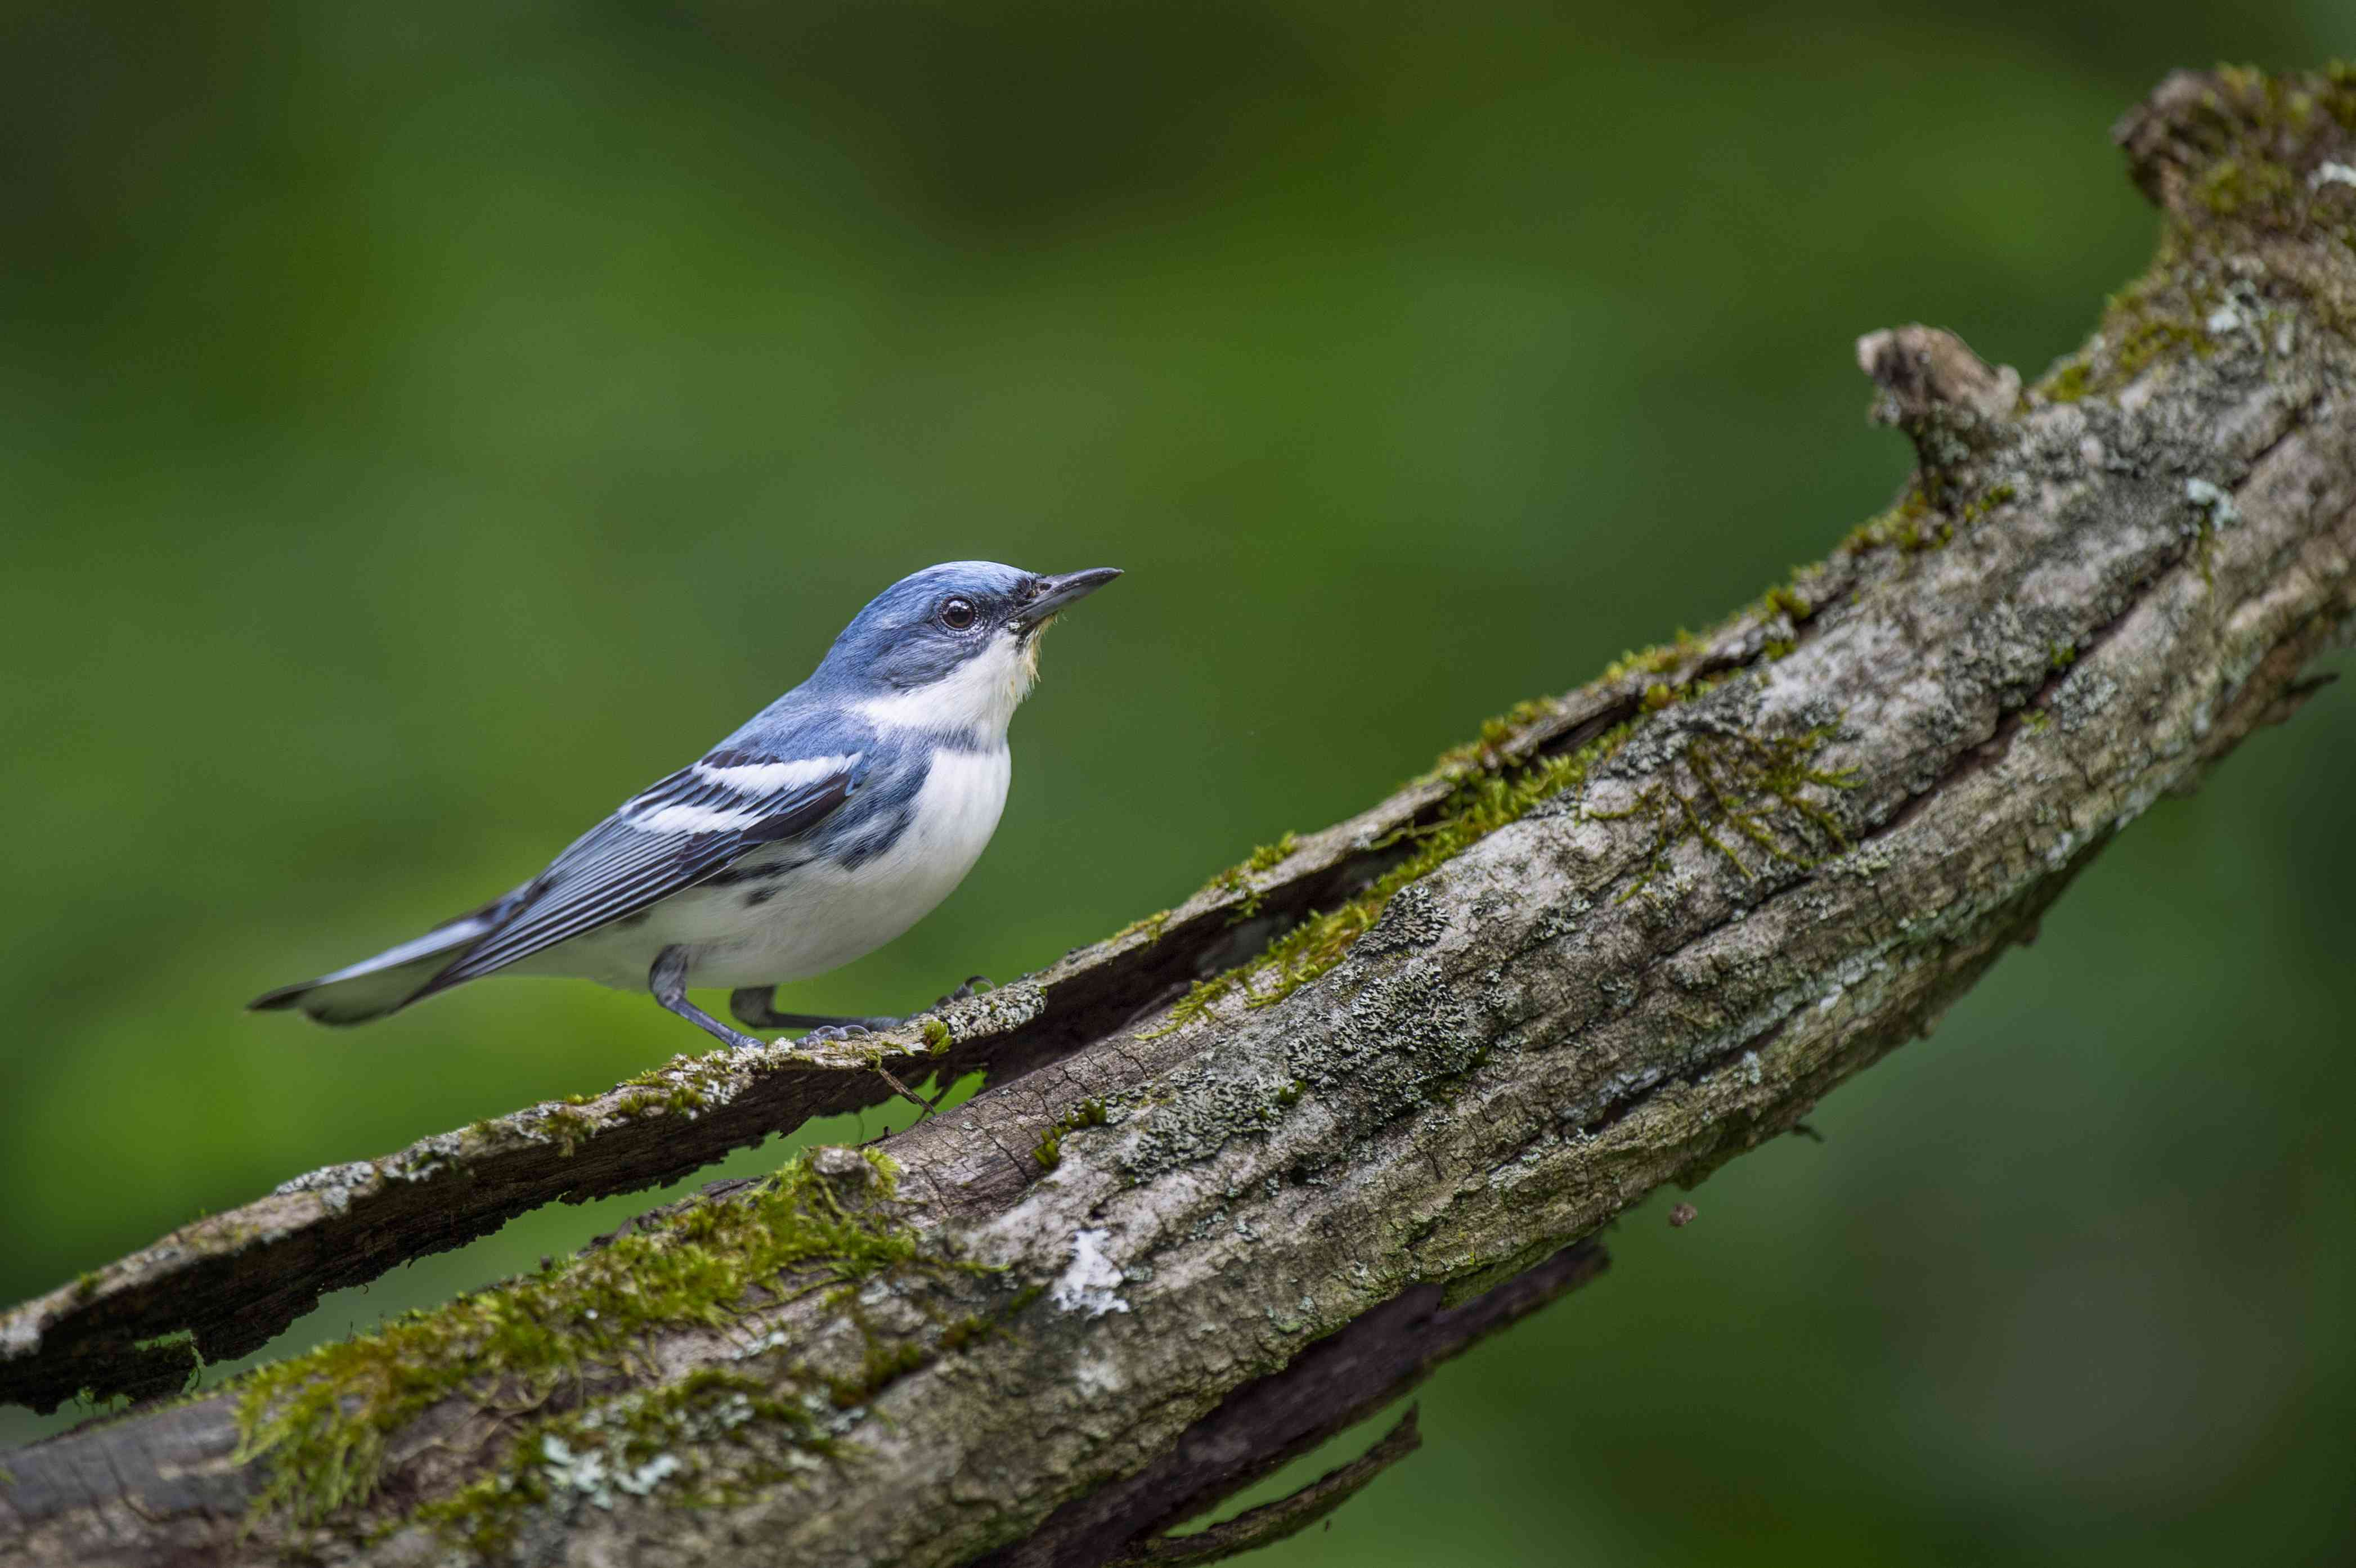 Cerulean warbler perched on a textured log